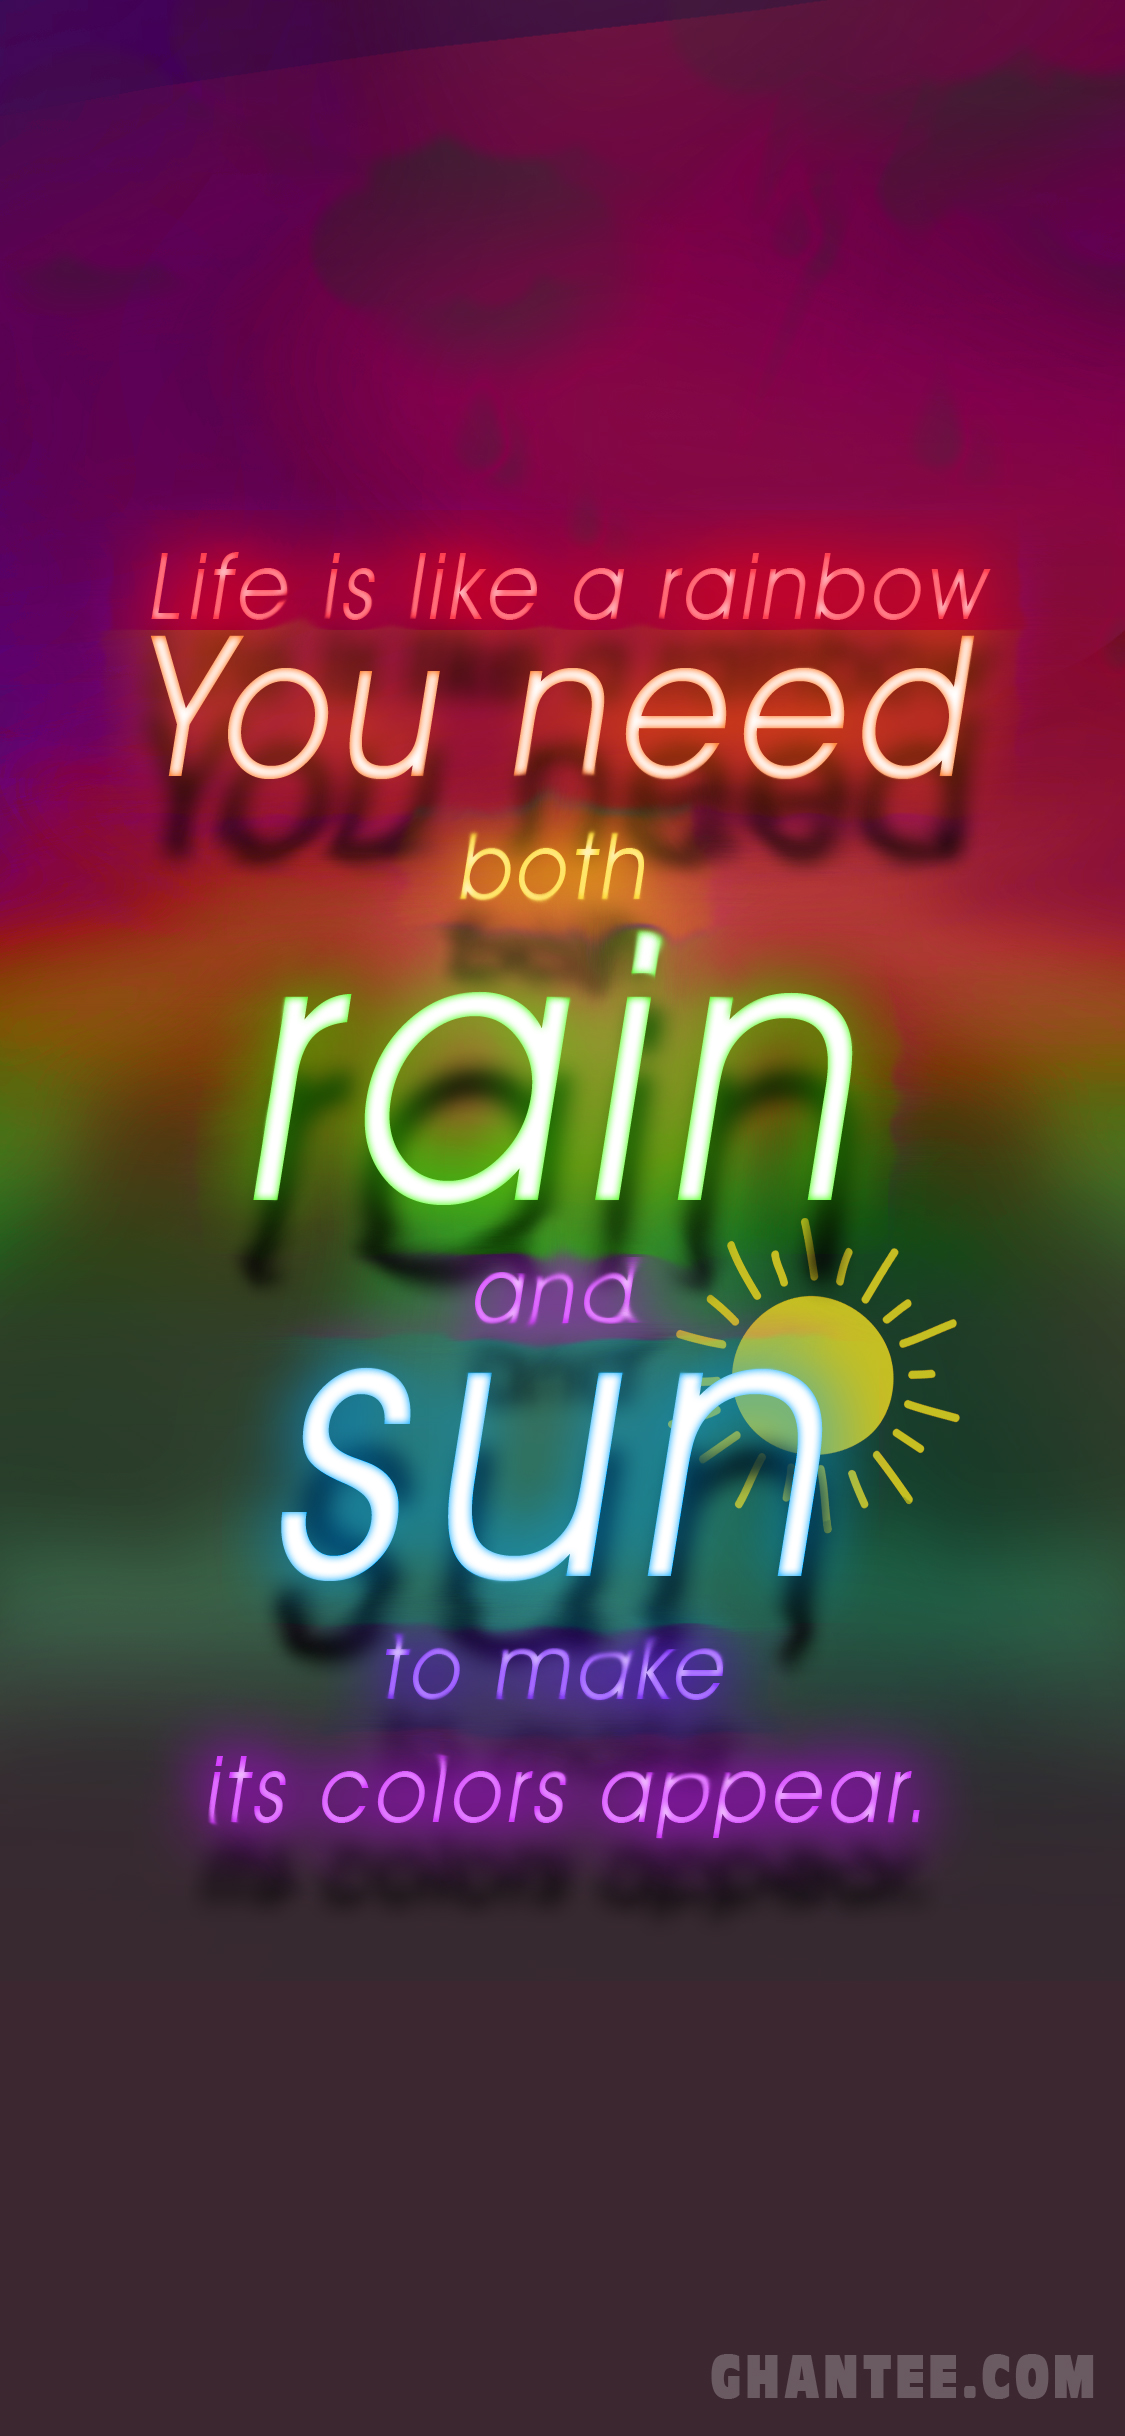 colorful quotes HD wallpaper for iphone x-xs